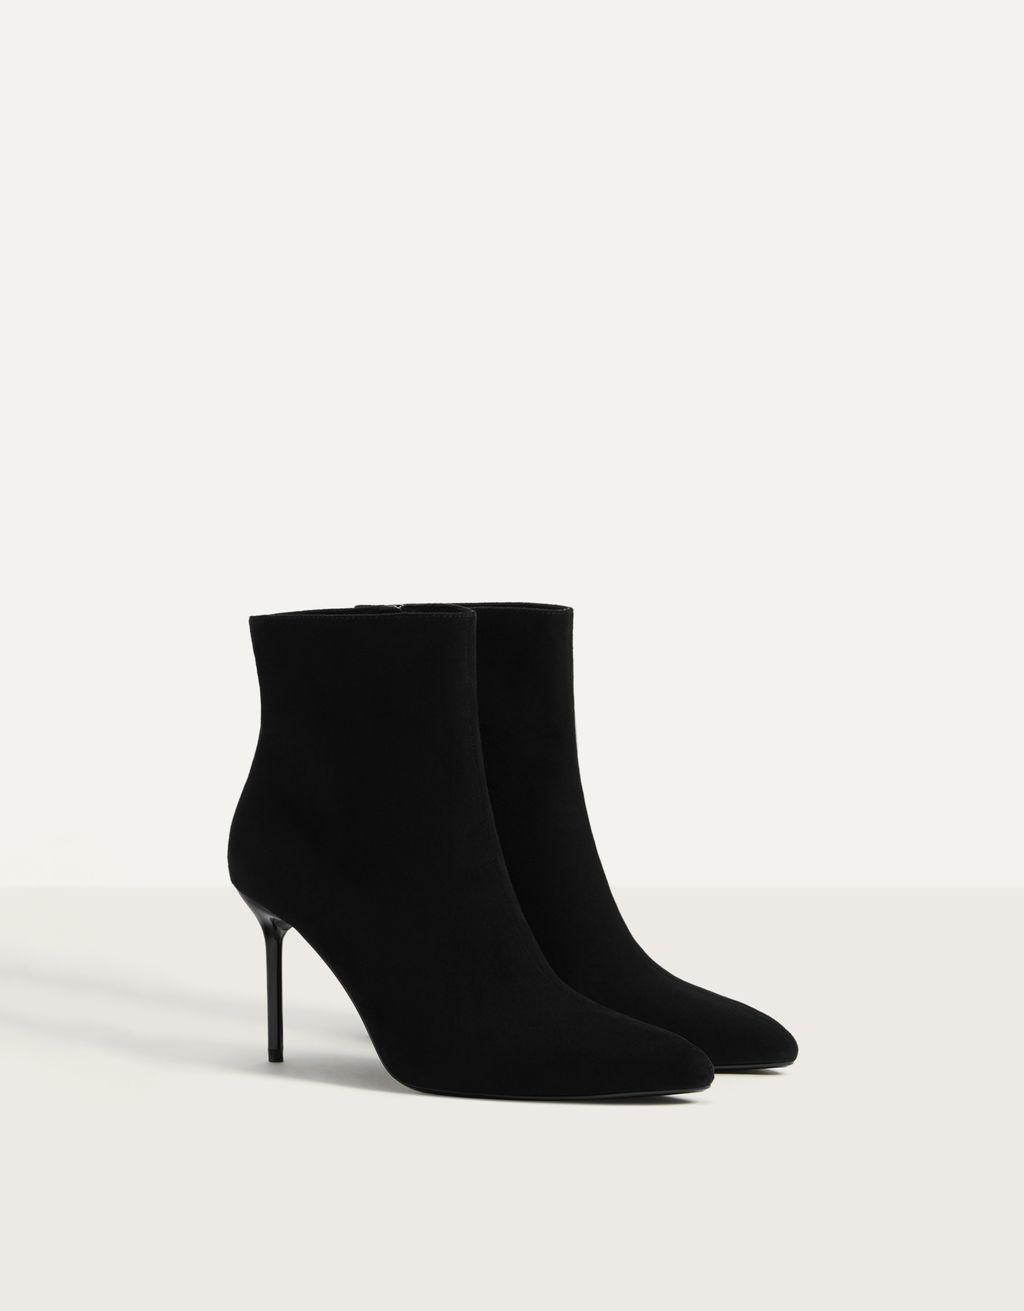 Stiletto-heel ankle boots